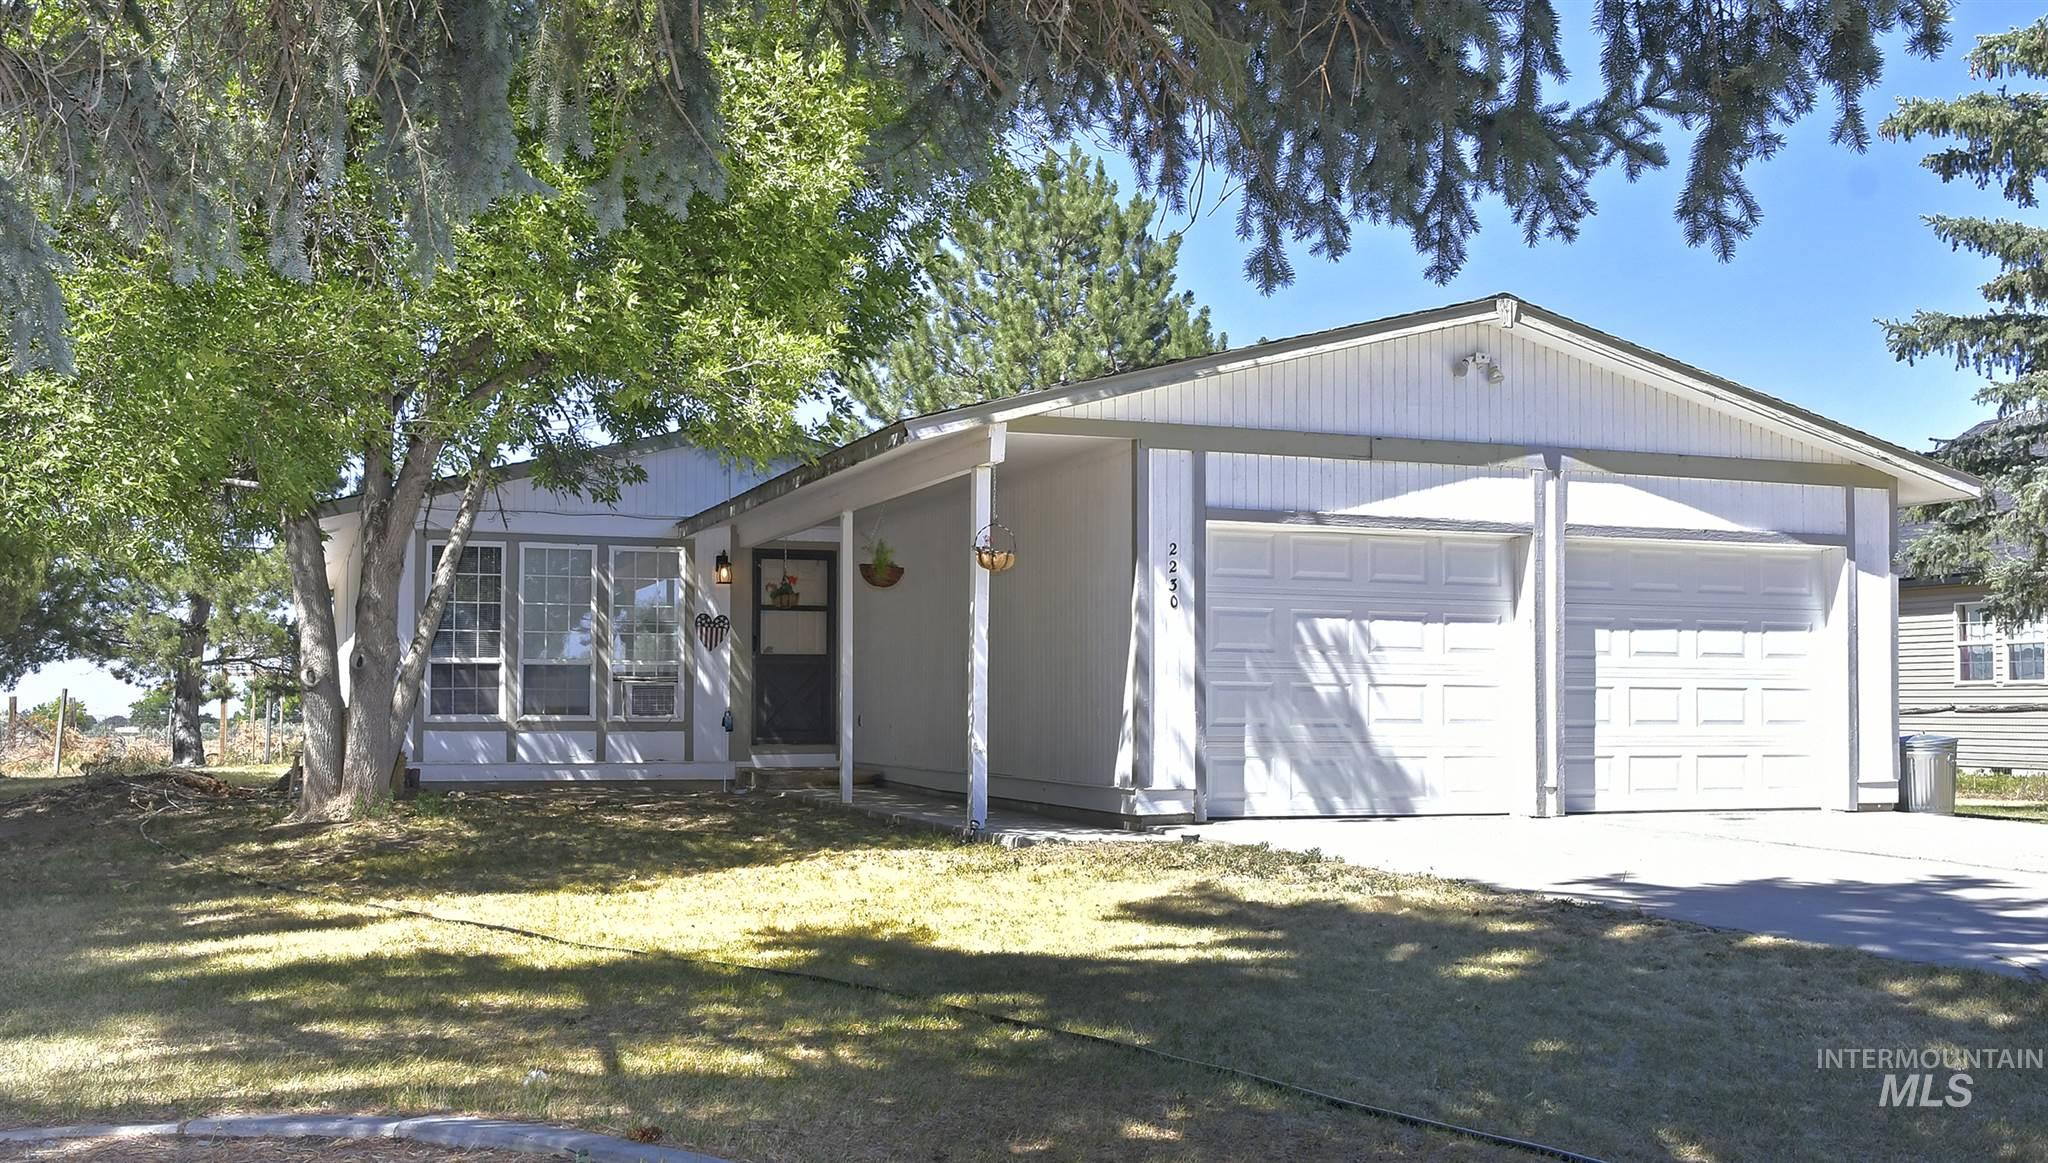 2230 E 3775 North, Filer, Idaho 83328, 2 Bedrooms, 1 Bathroom, Residential For Sale, Price $175,000, 98773770